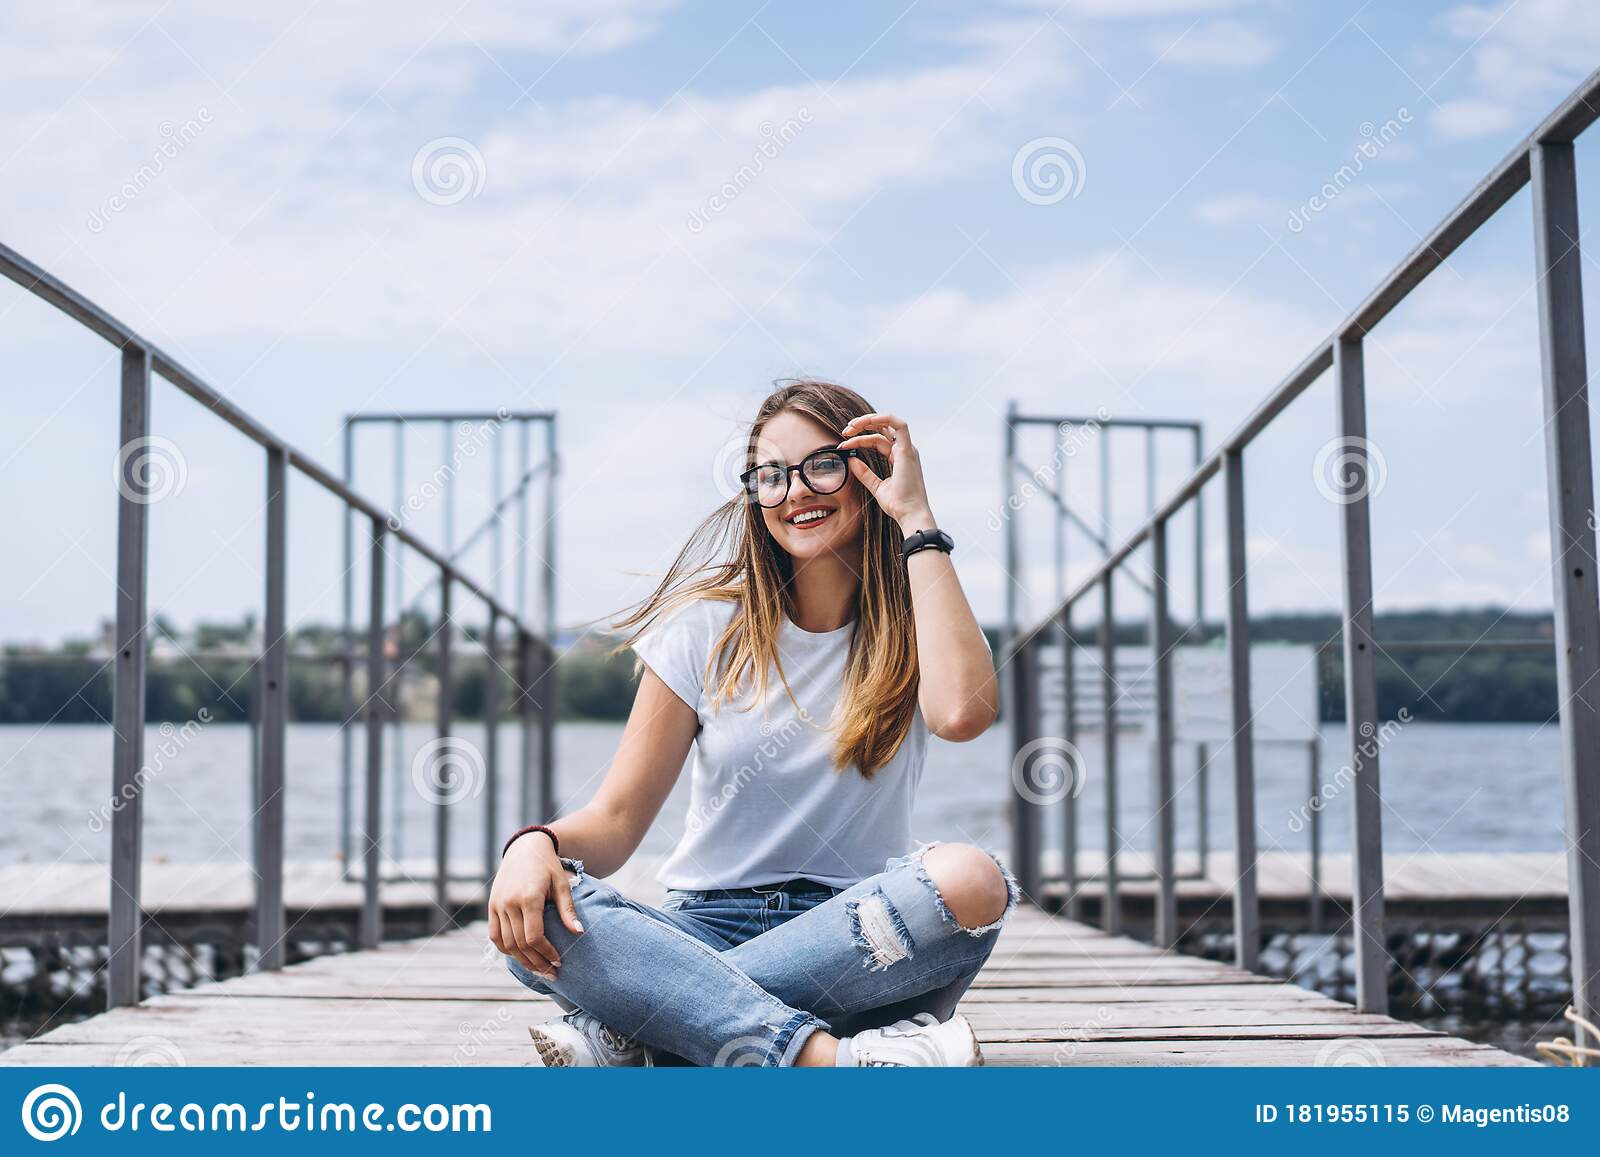 Young Woman With Long Hair In Stylish Glasses Posing On A